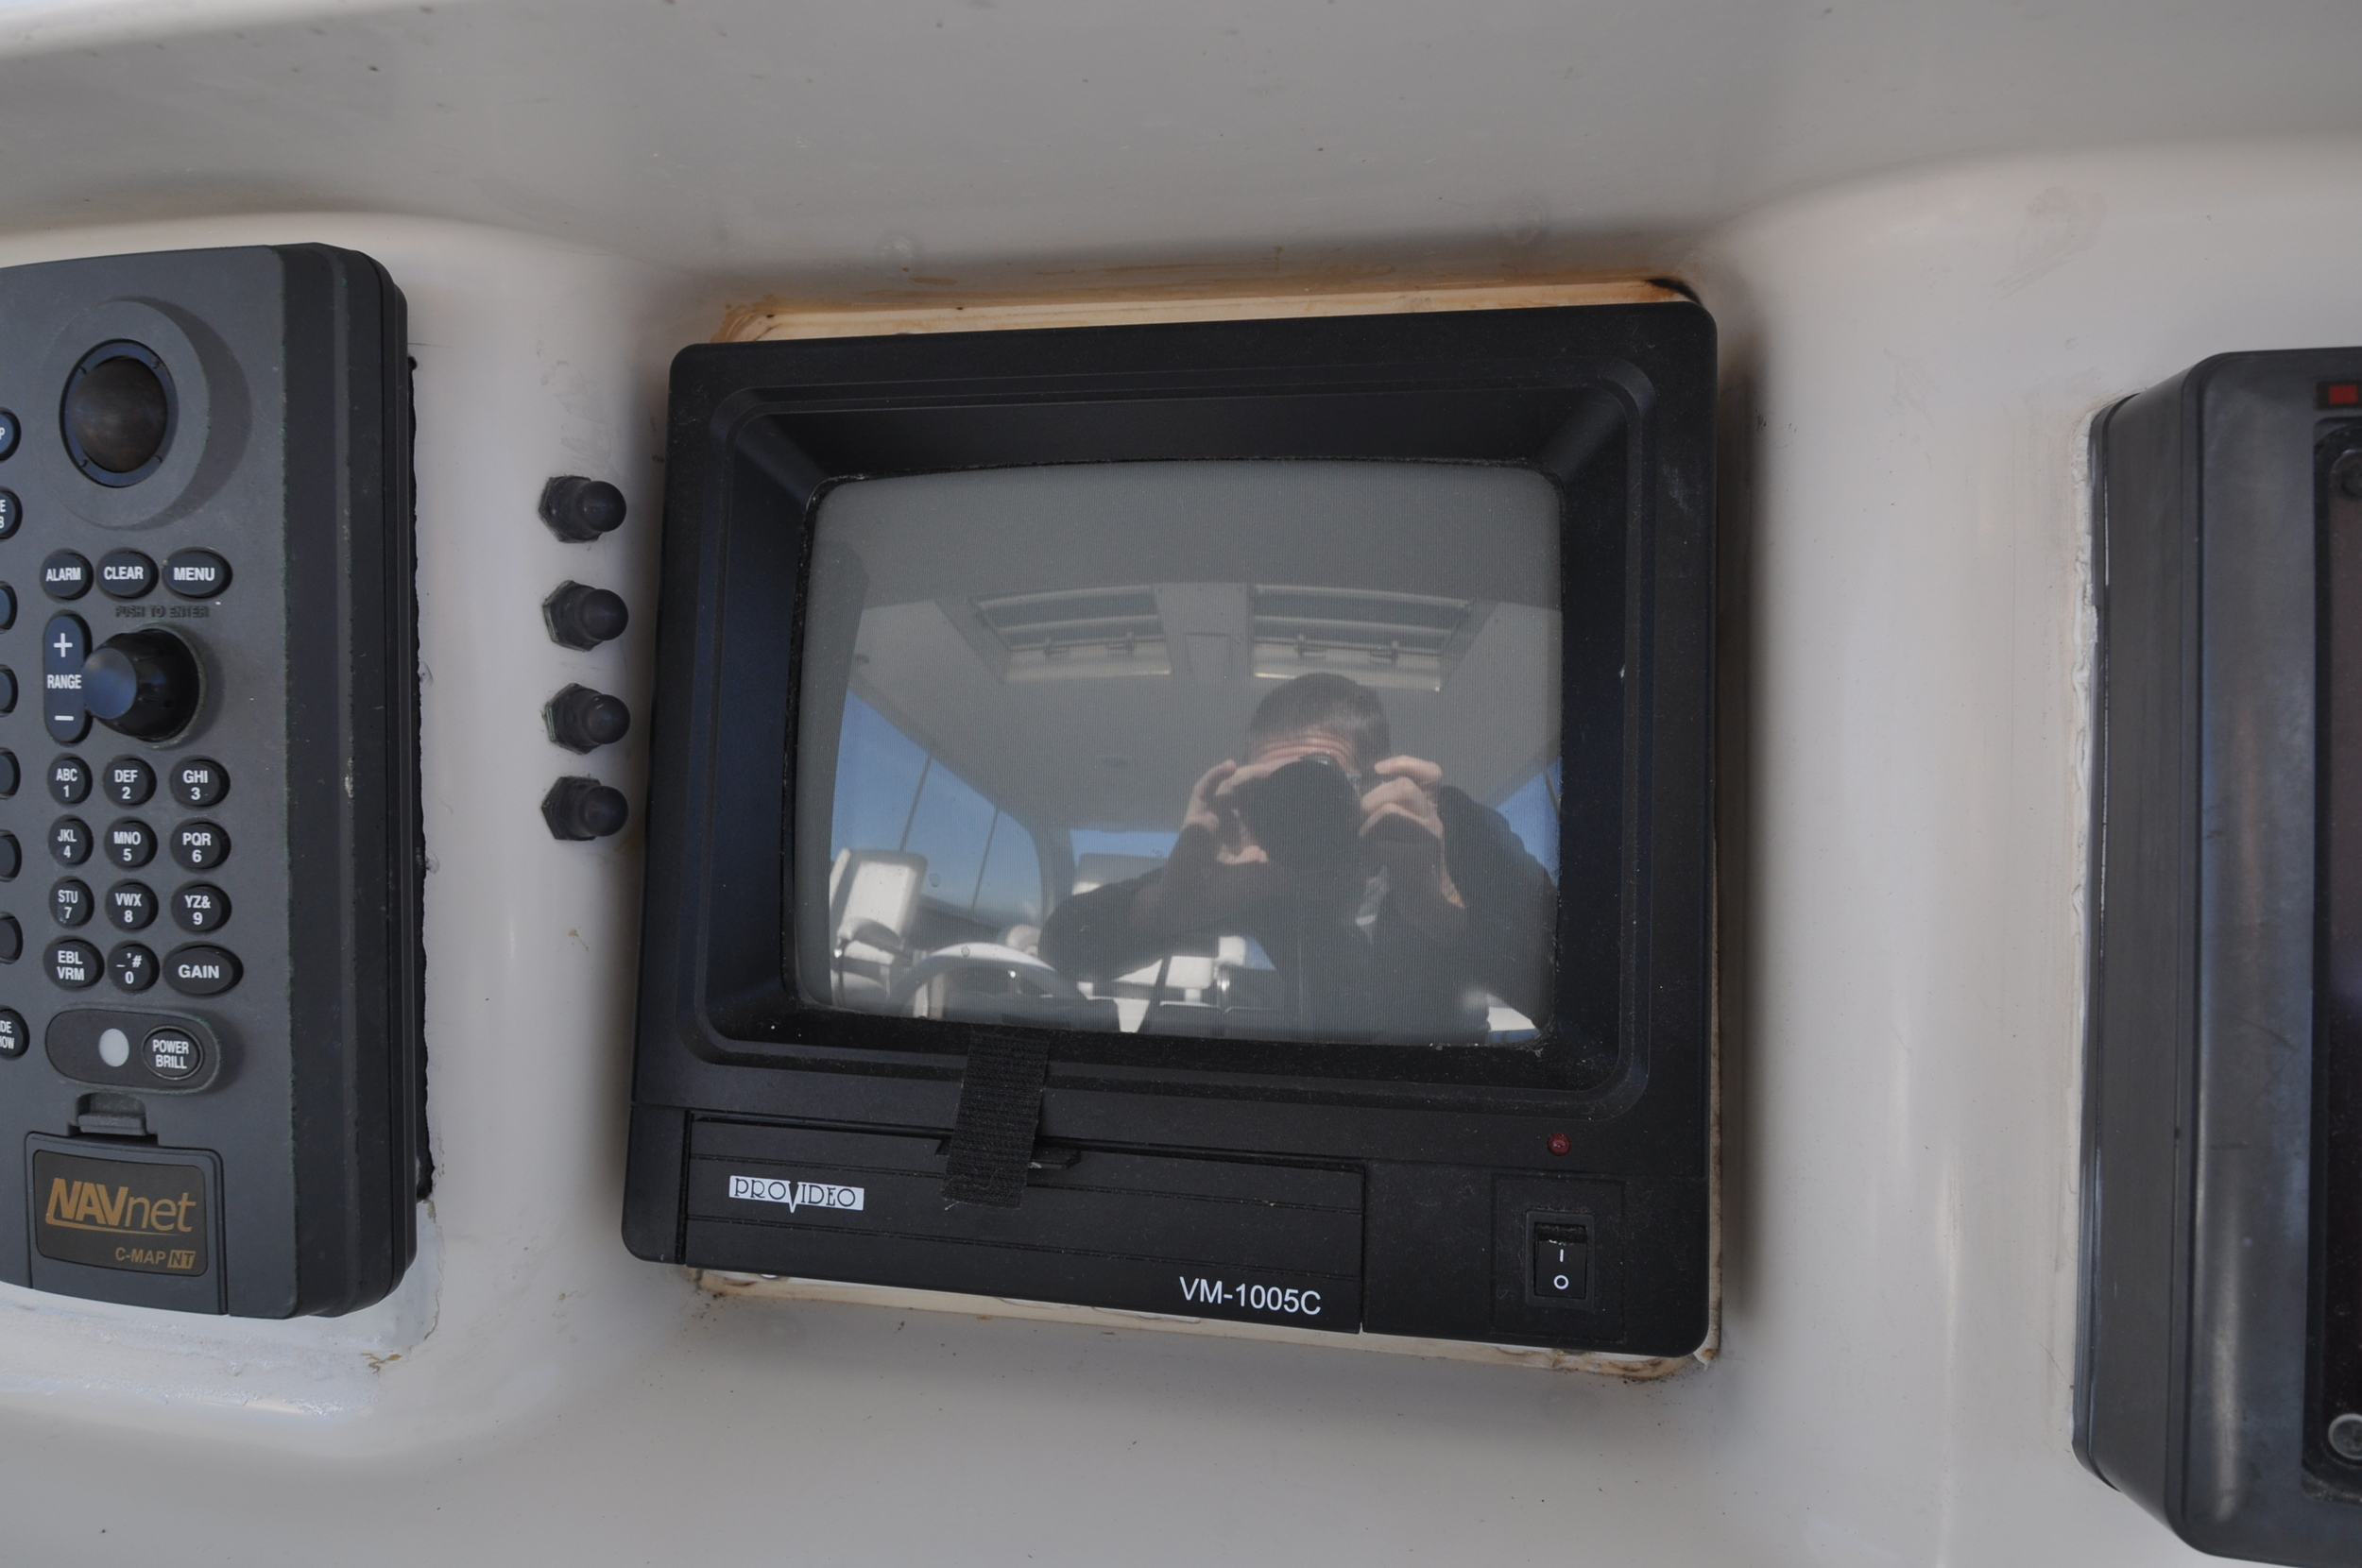 105 - Fly bridge helm provideo display.JPG